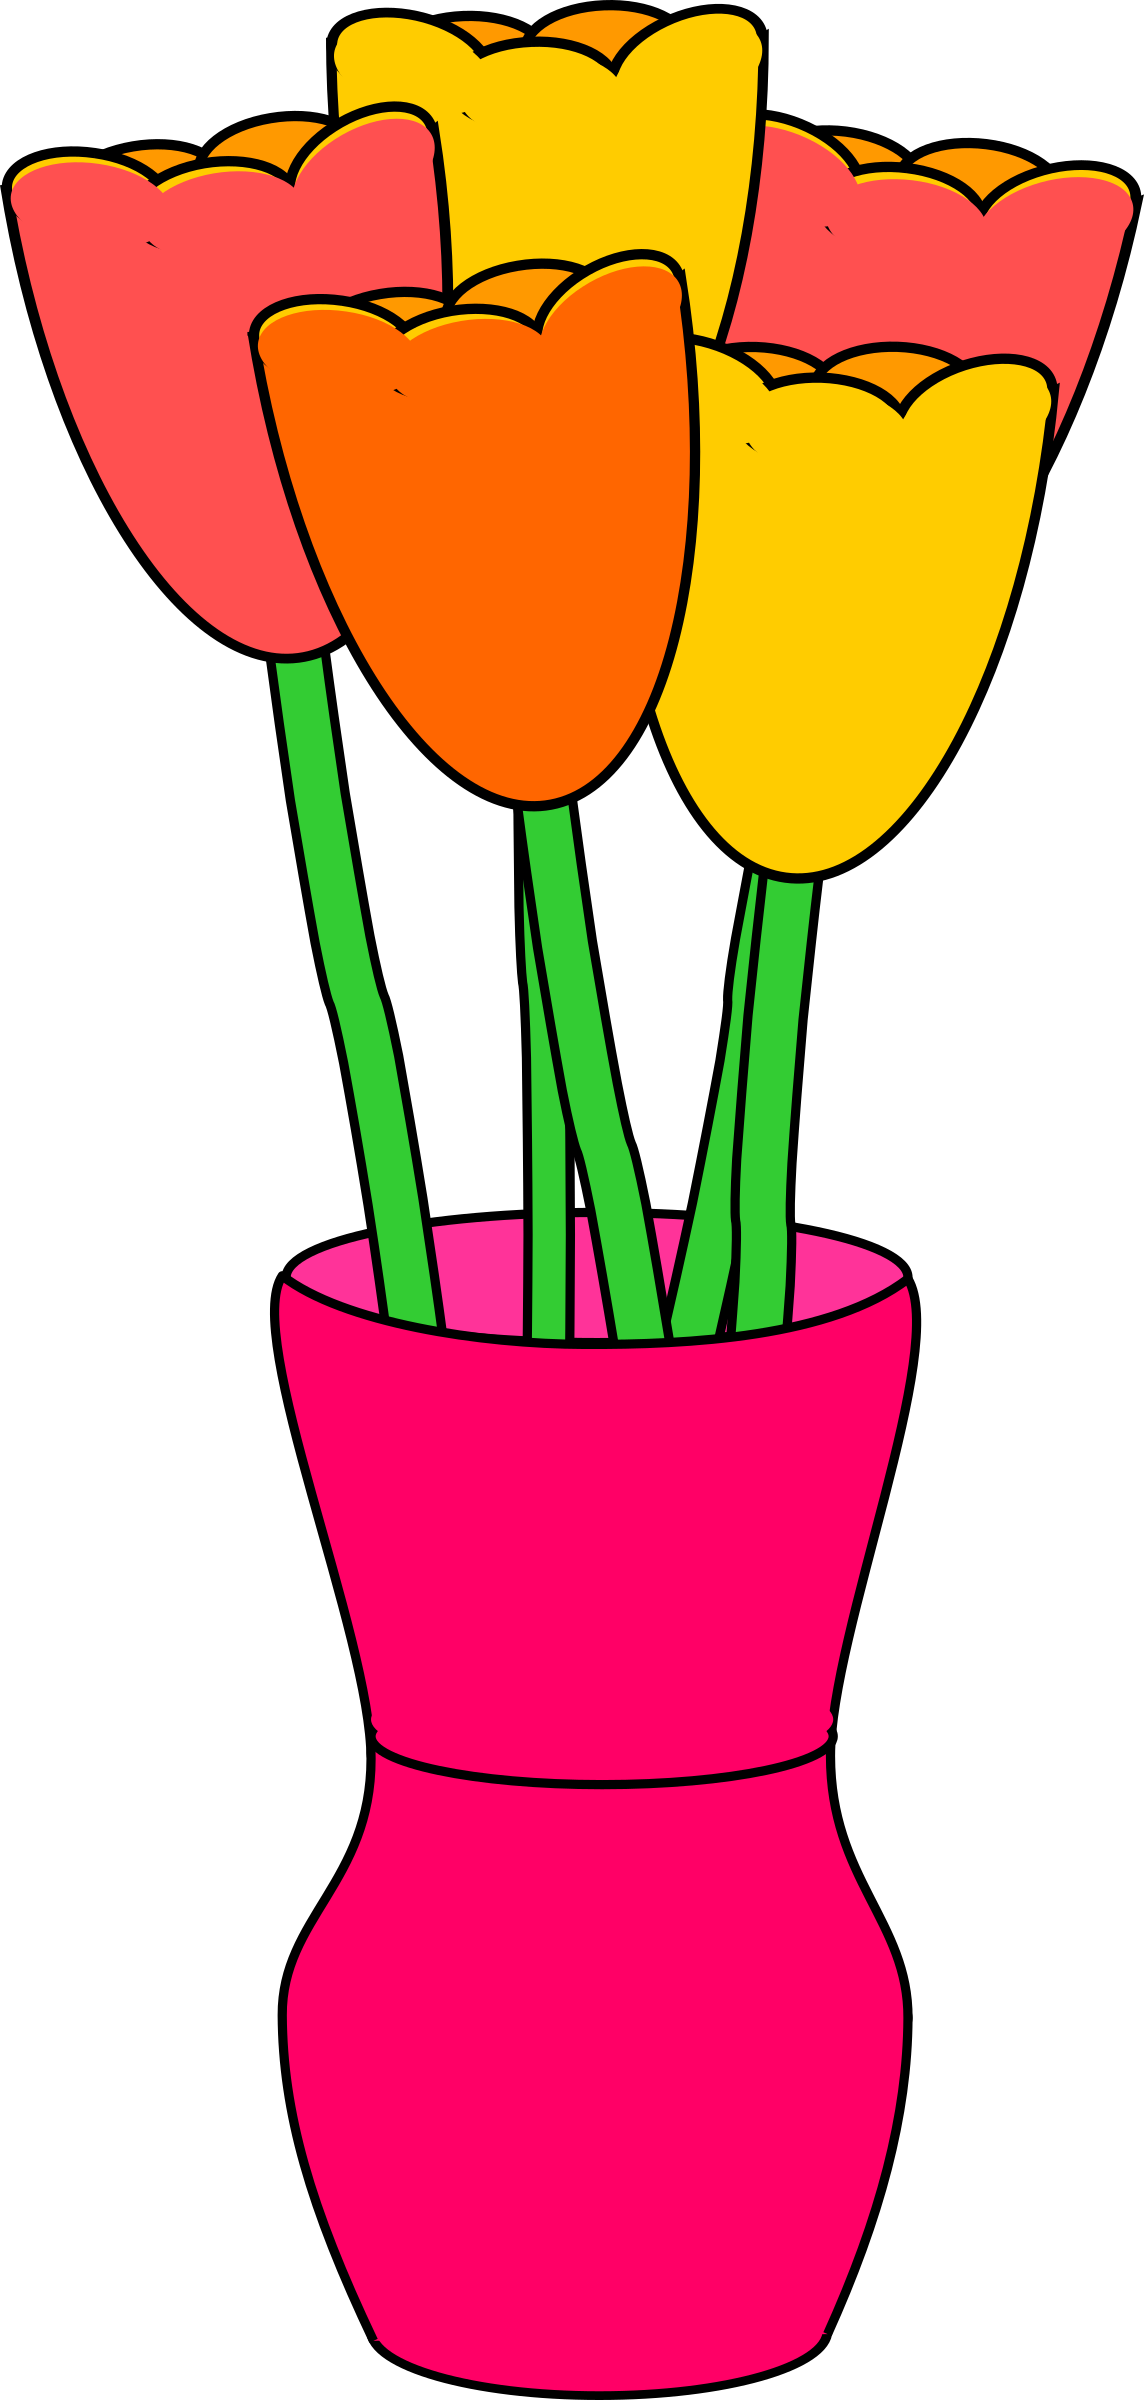 Vase clipart cartoon. Pink of multicolored tulips